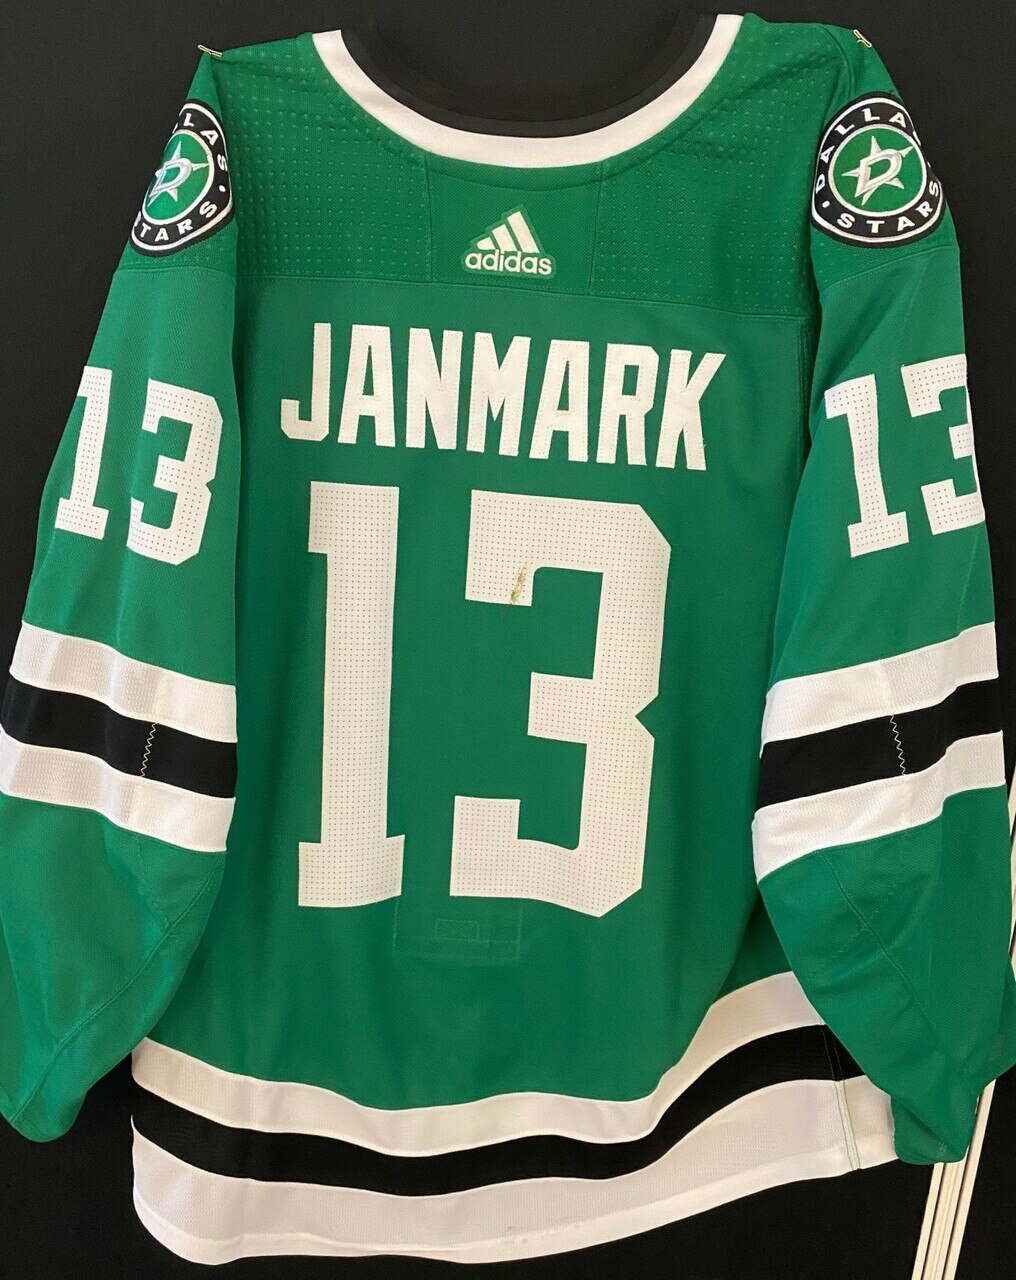 MATTIAS JANMARK 18/19 GAME WORN HOME JERSEY SET 3